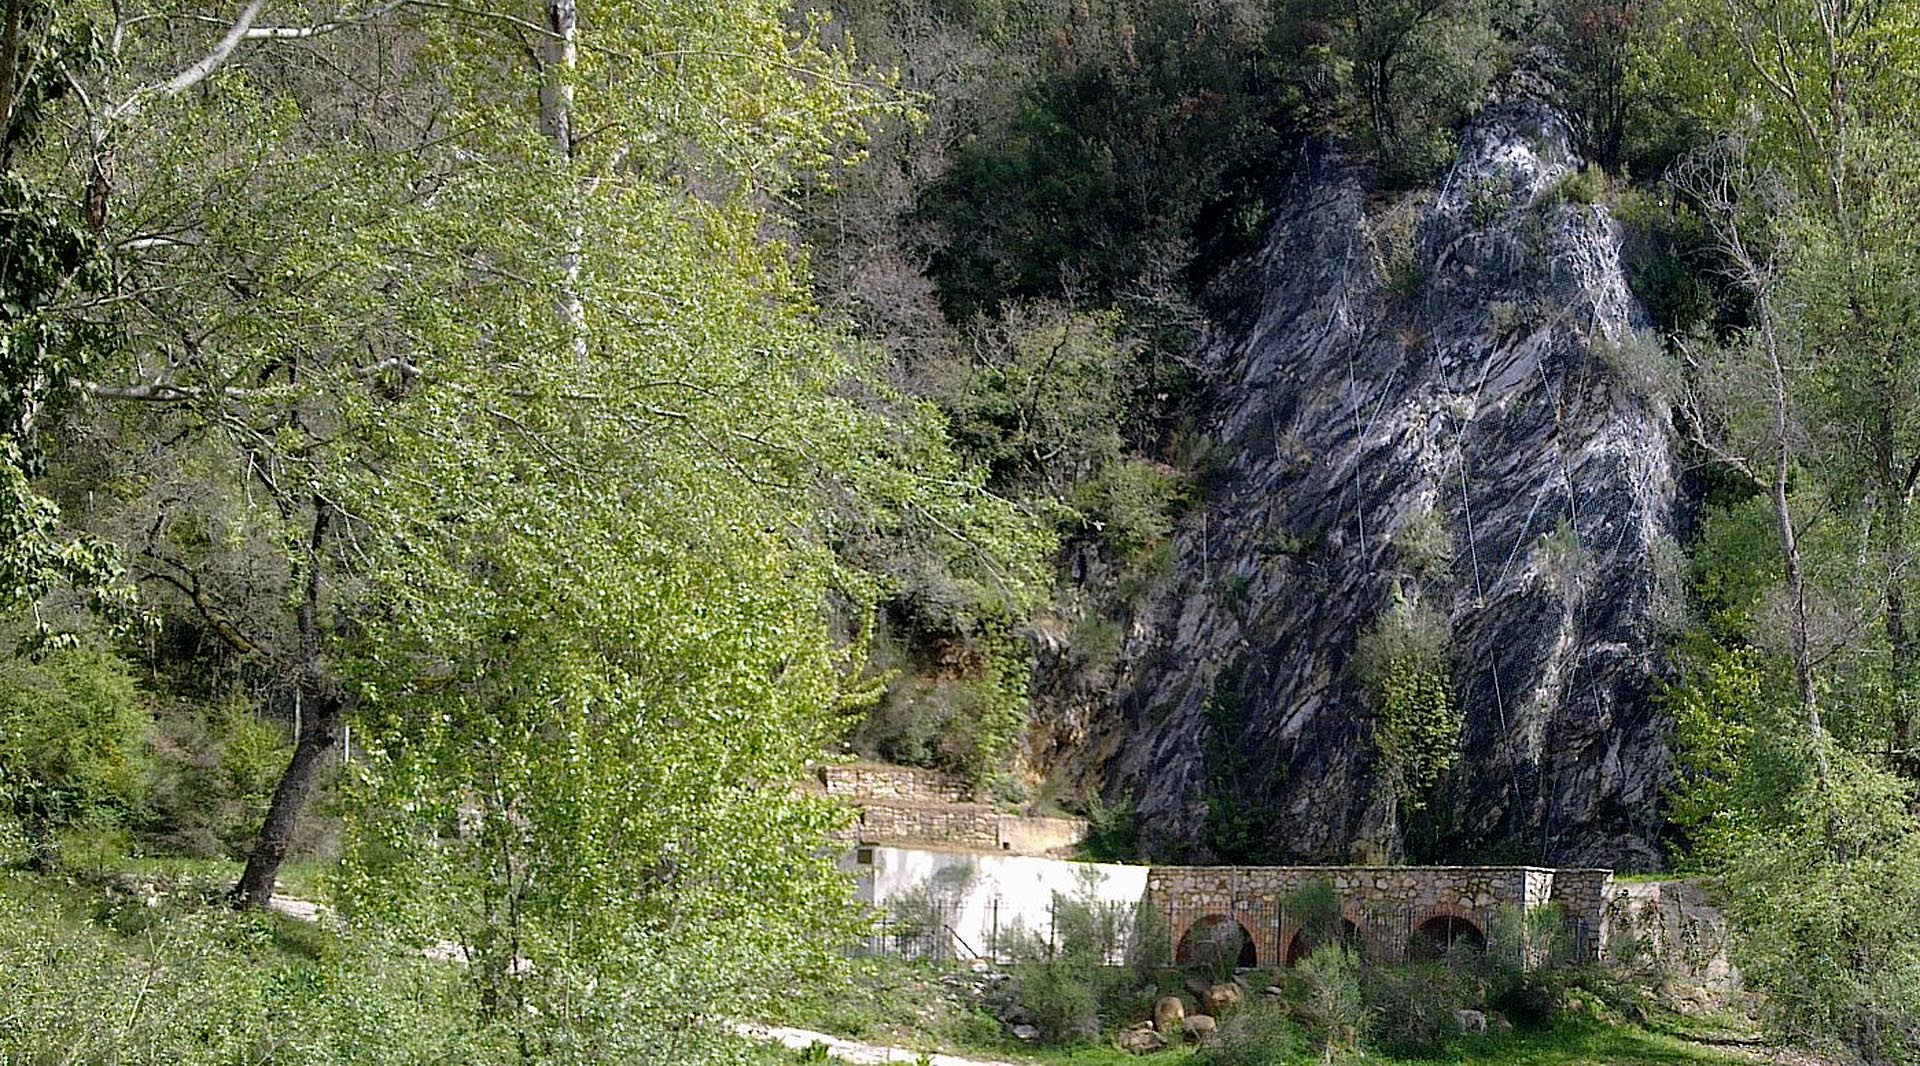 From Todi to Orvieto, through Spoleto and Parrano: discovering the natural Umbrian caves